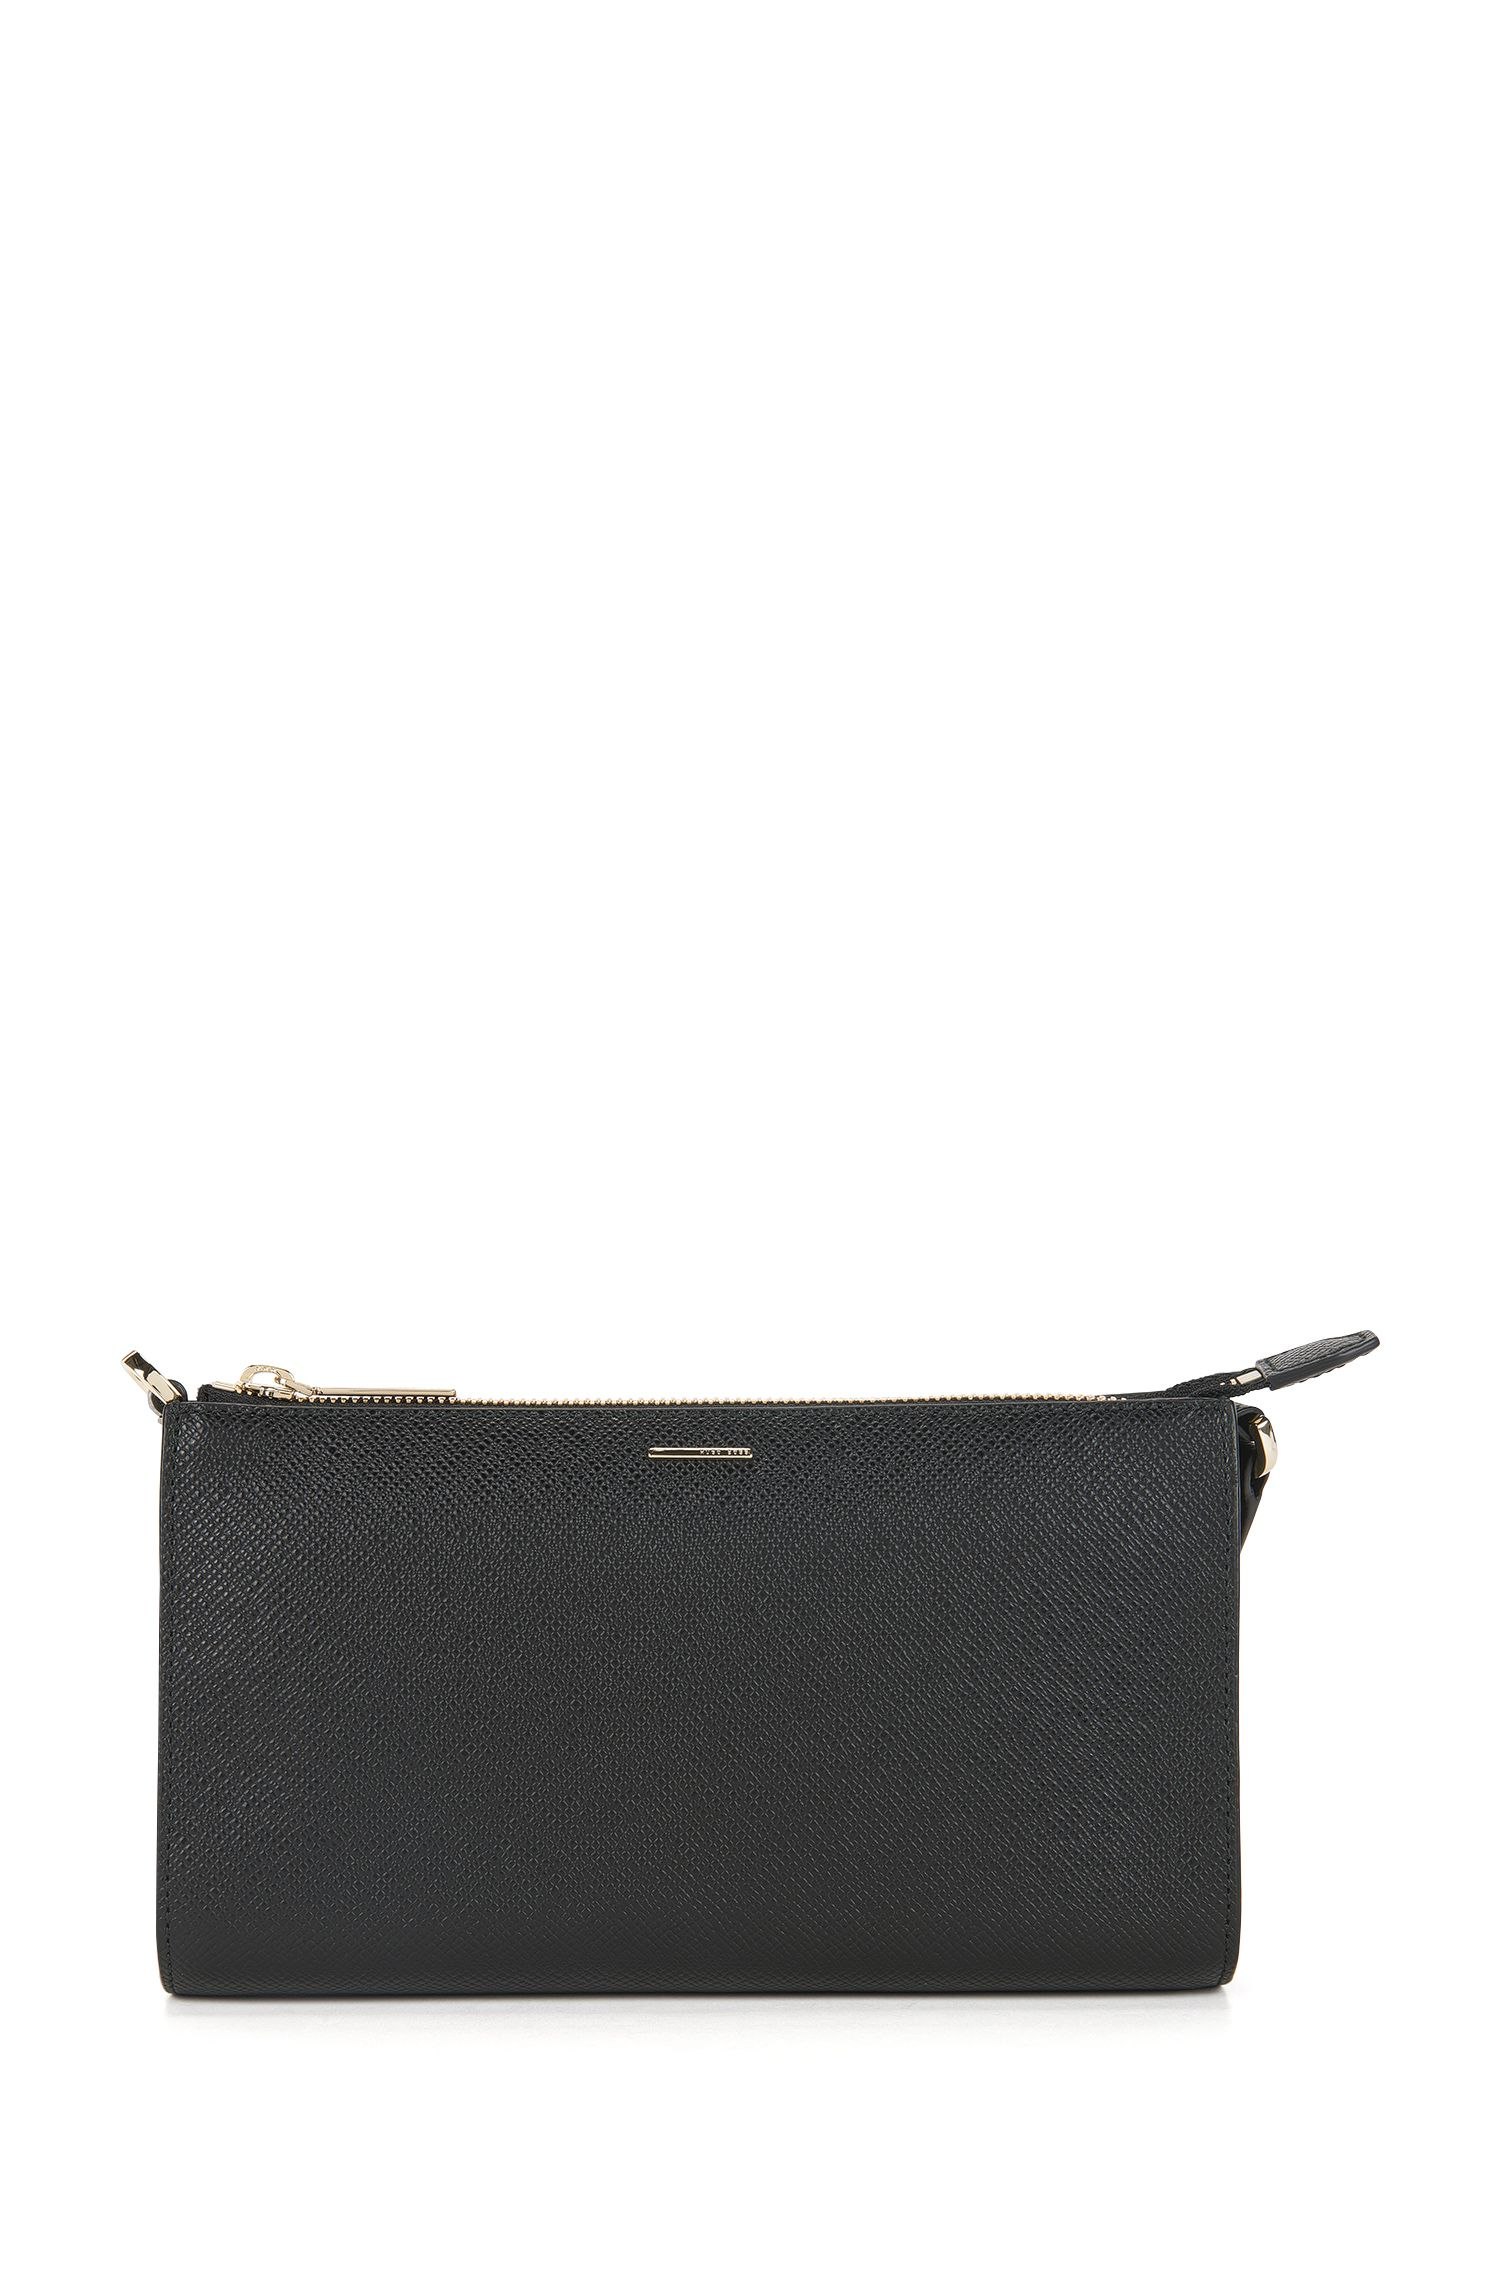 Calfskin Embossed Clutch | Staple Mini Bag FPB